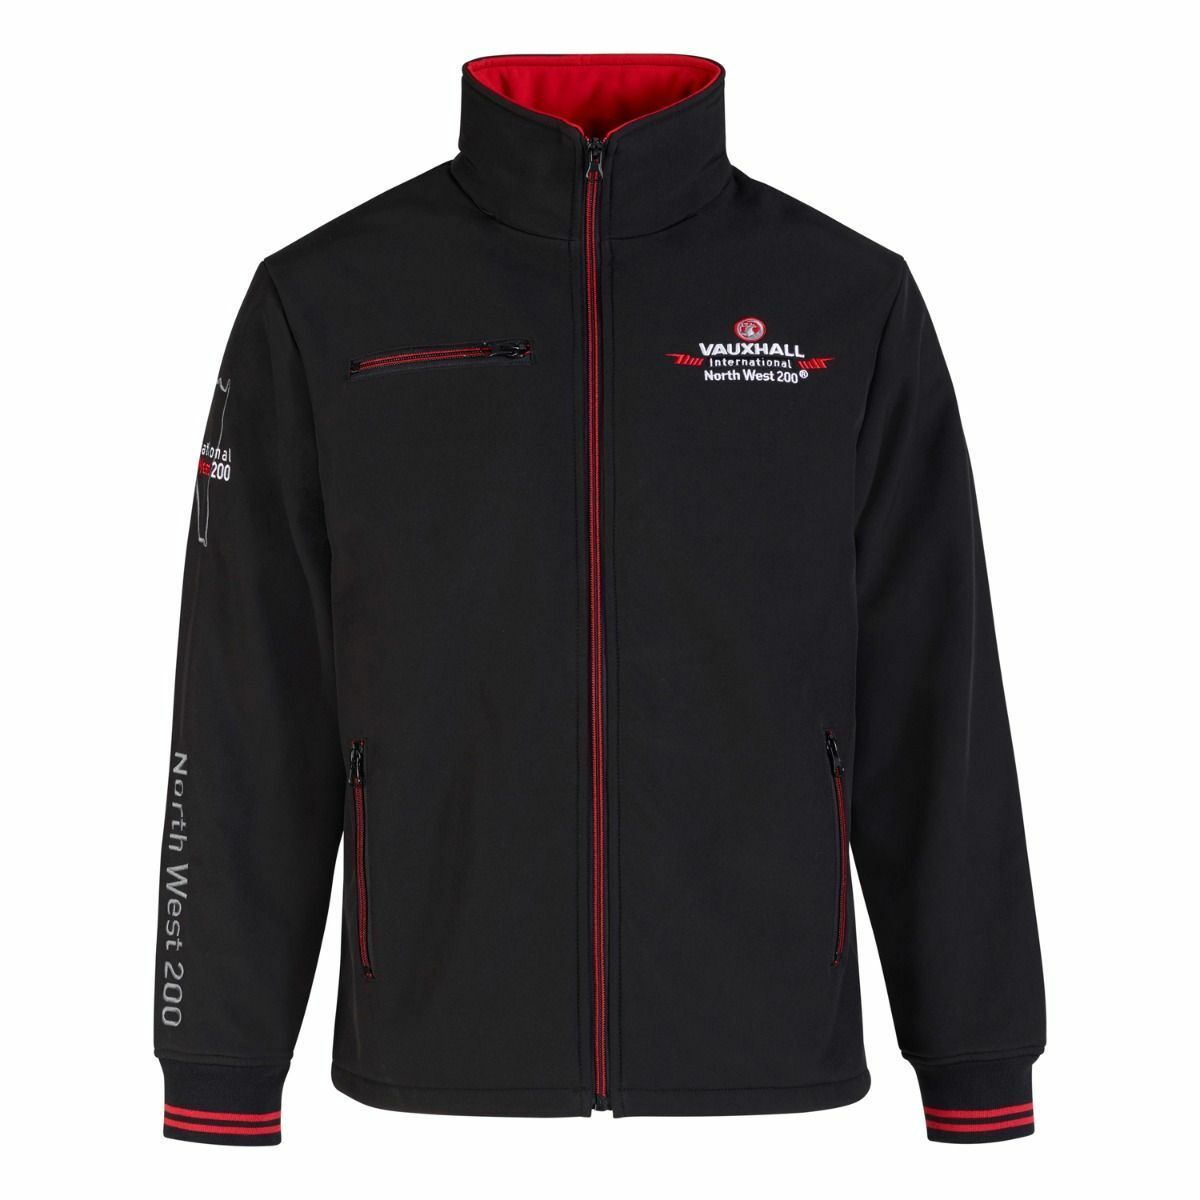 Oficial Norte West 200 Chaqueta Softshell